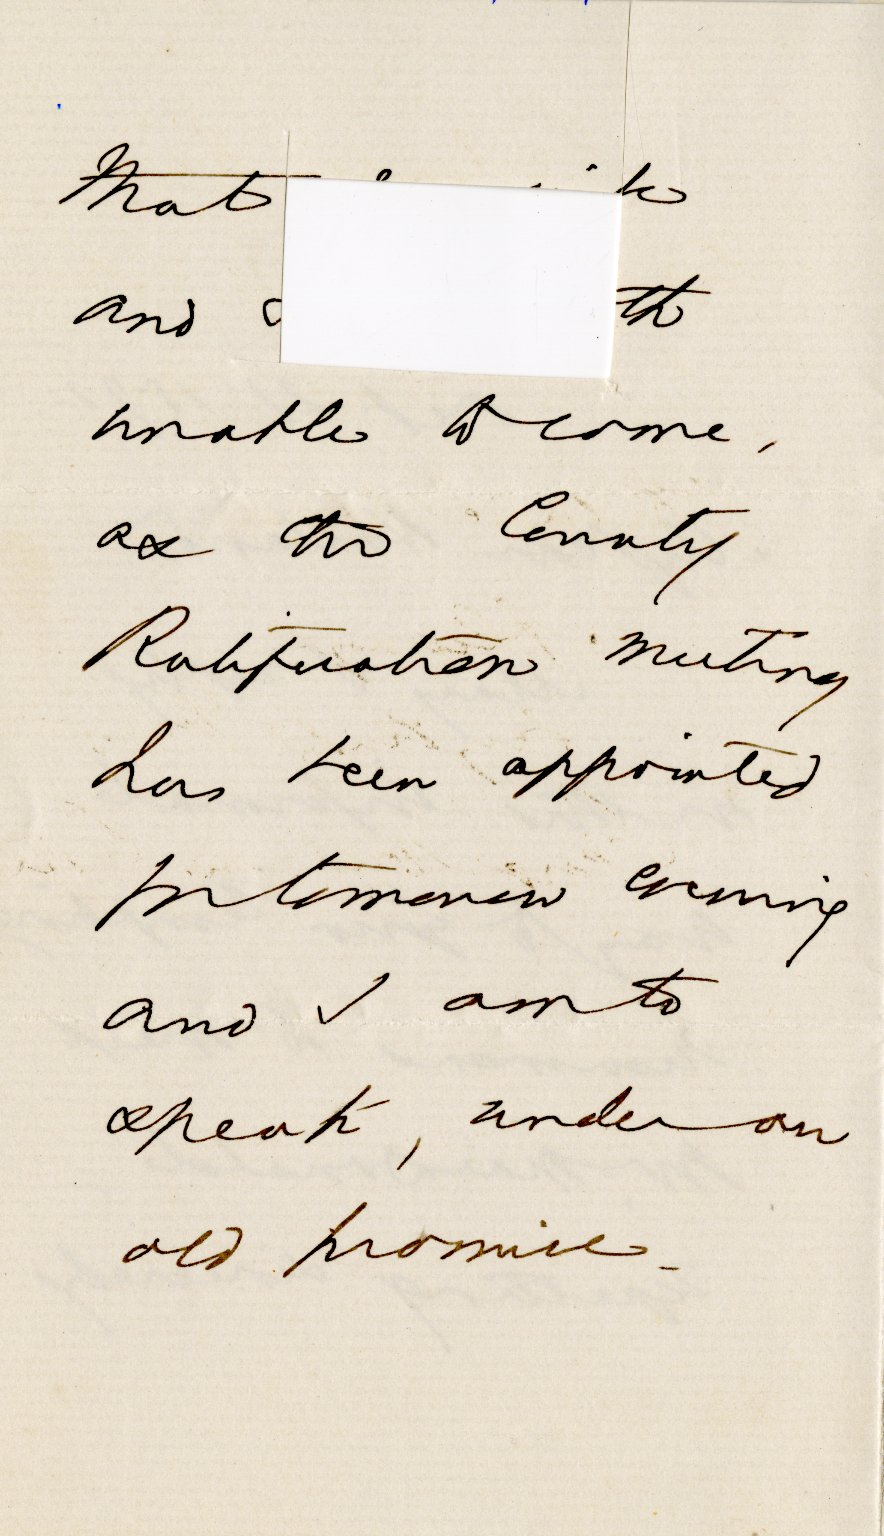 Curtis, George Wm. ALS, 3 pages, Oct. 21, 1872.